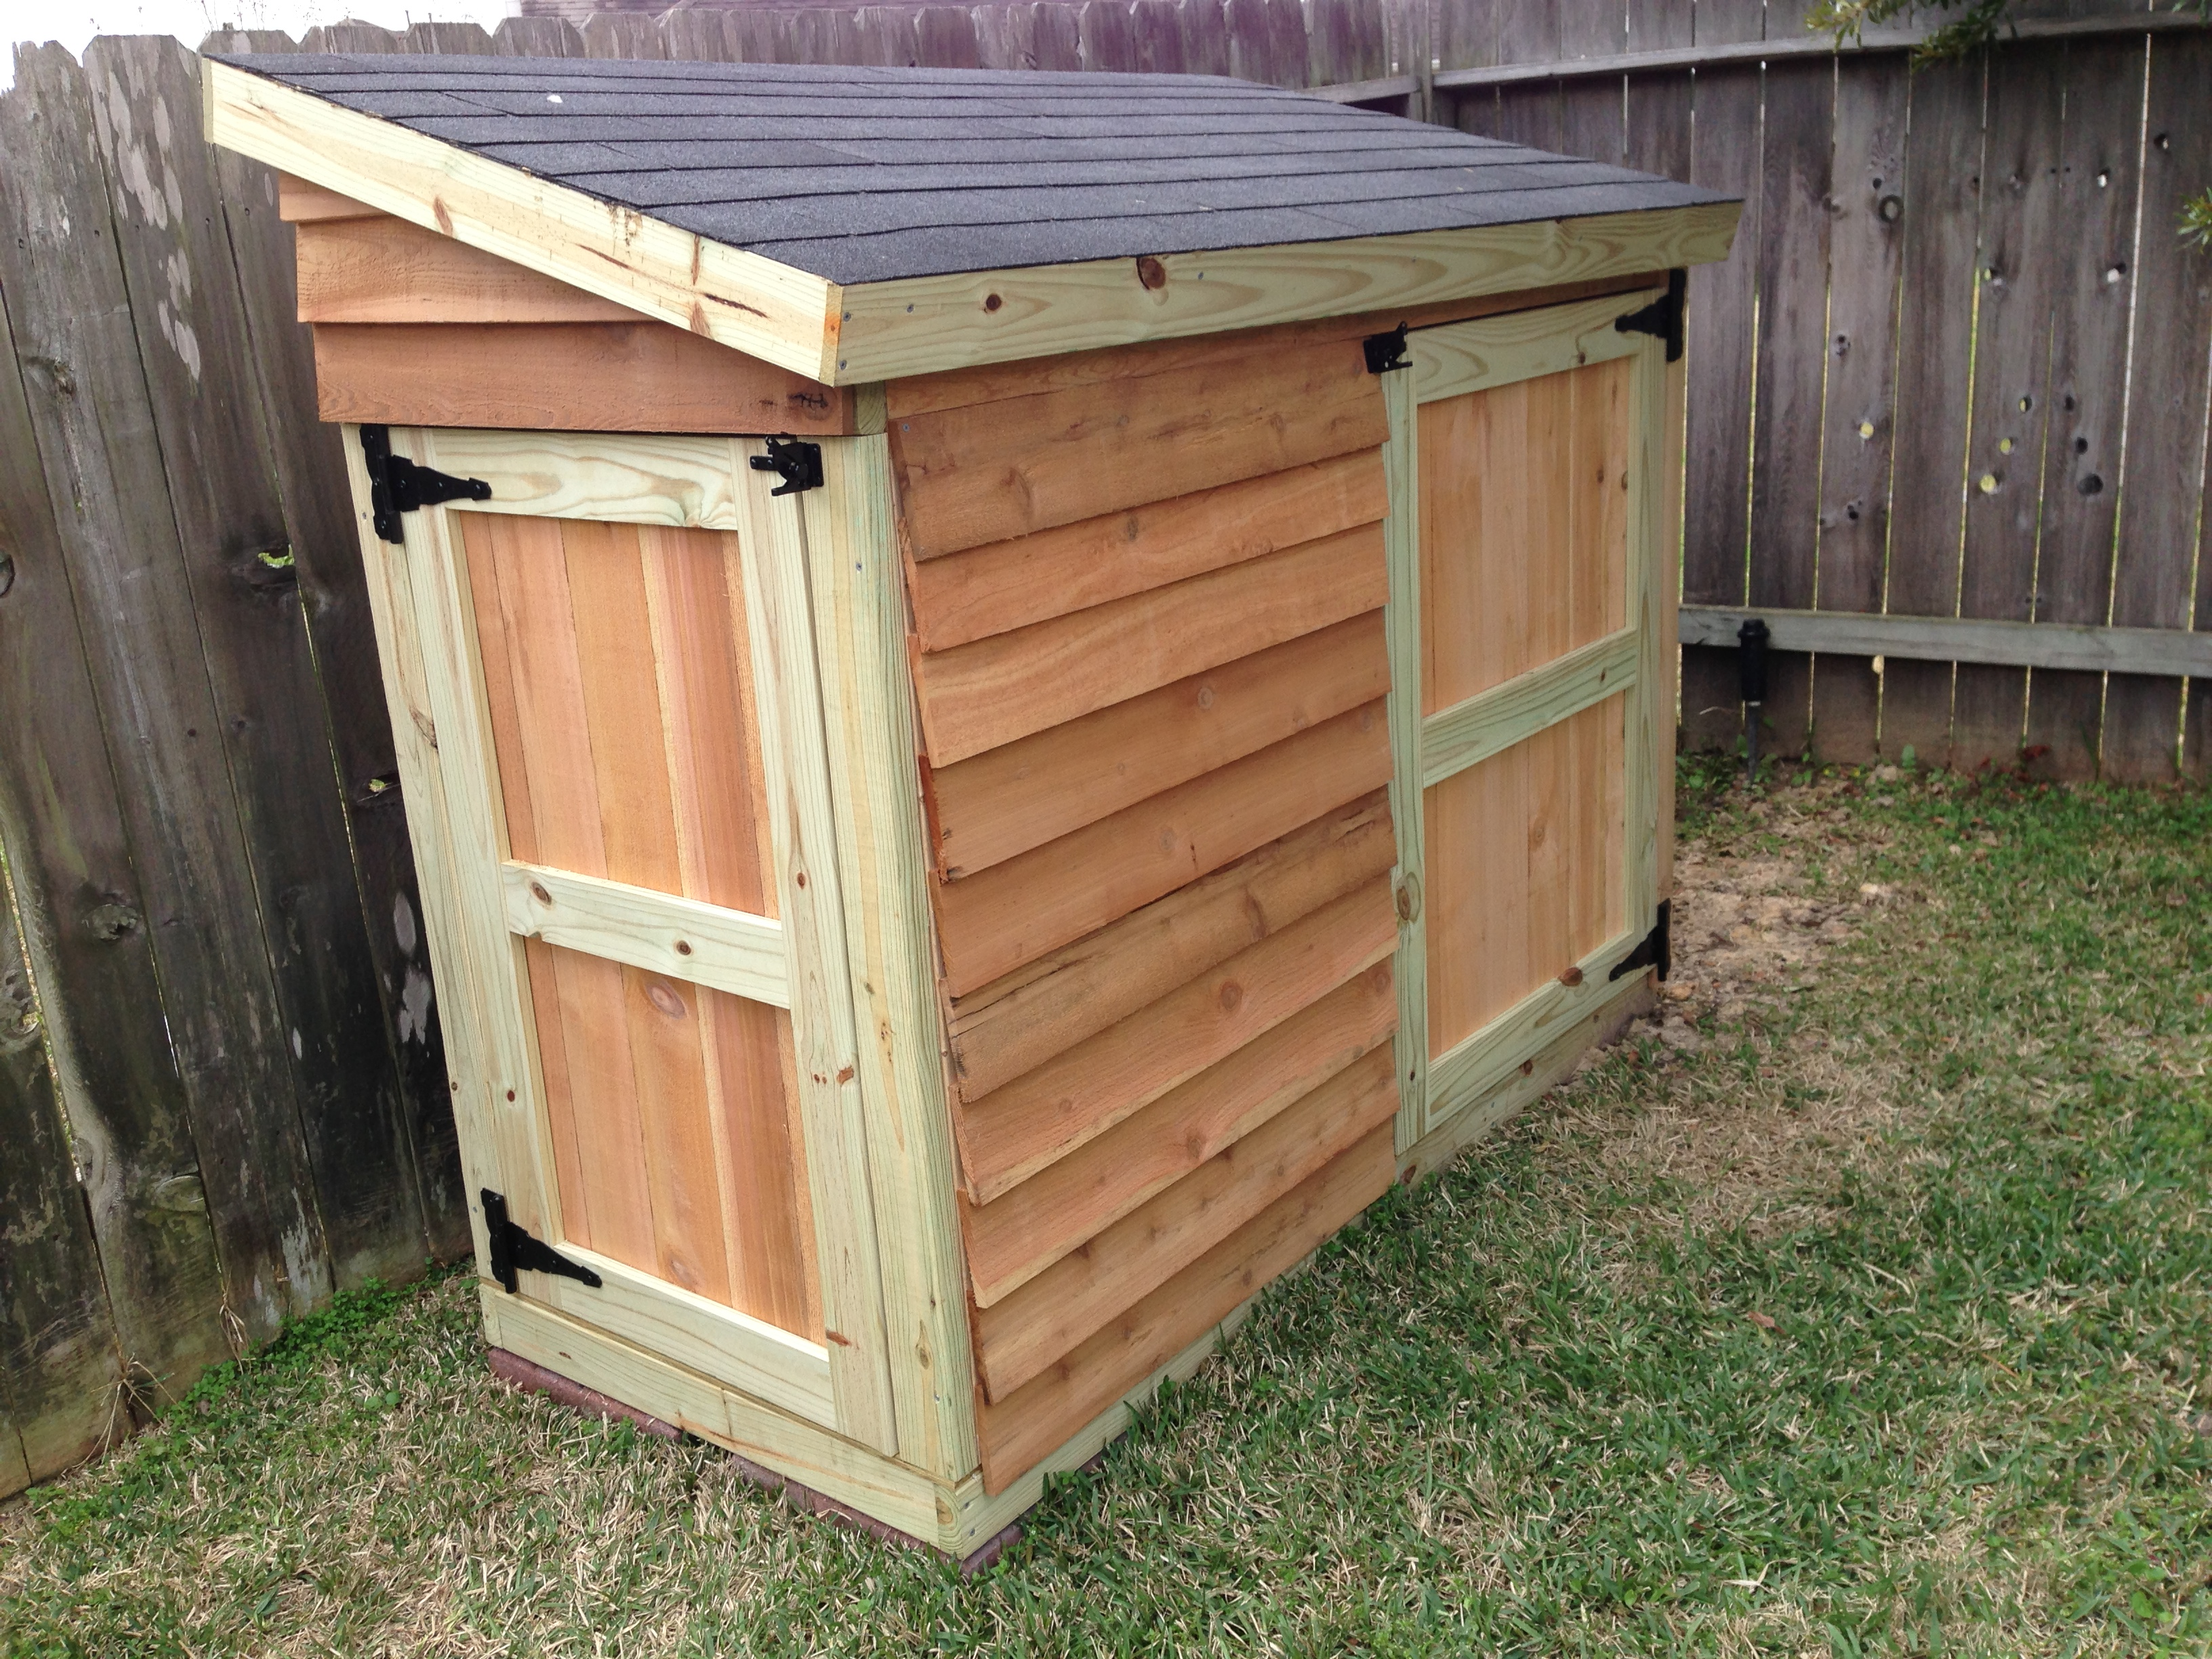 Ana white lawnmower shed diy projects for Diy garden shed